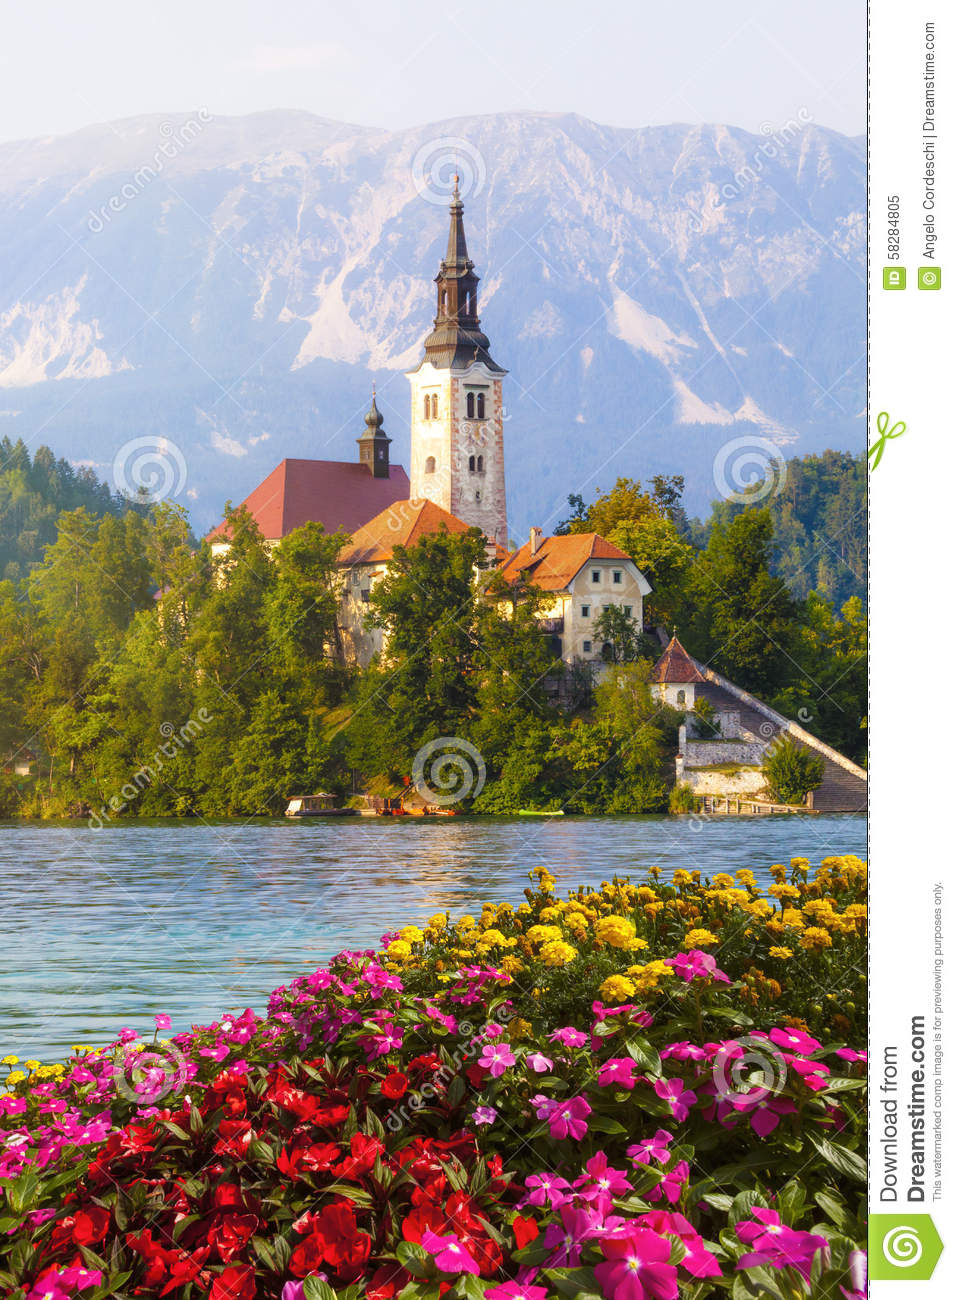 Bled, Slovenia. Island in the middle of the lake with church